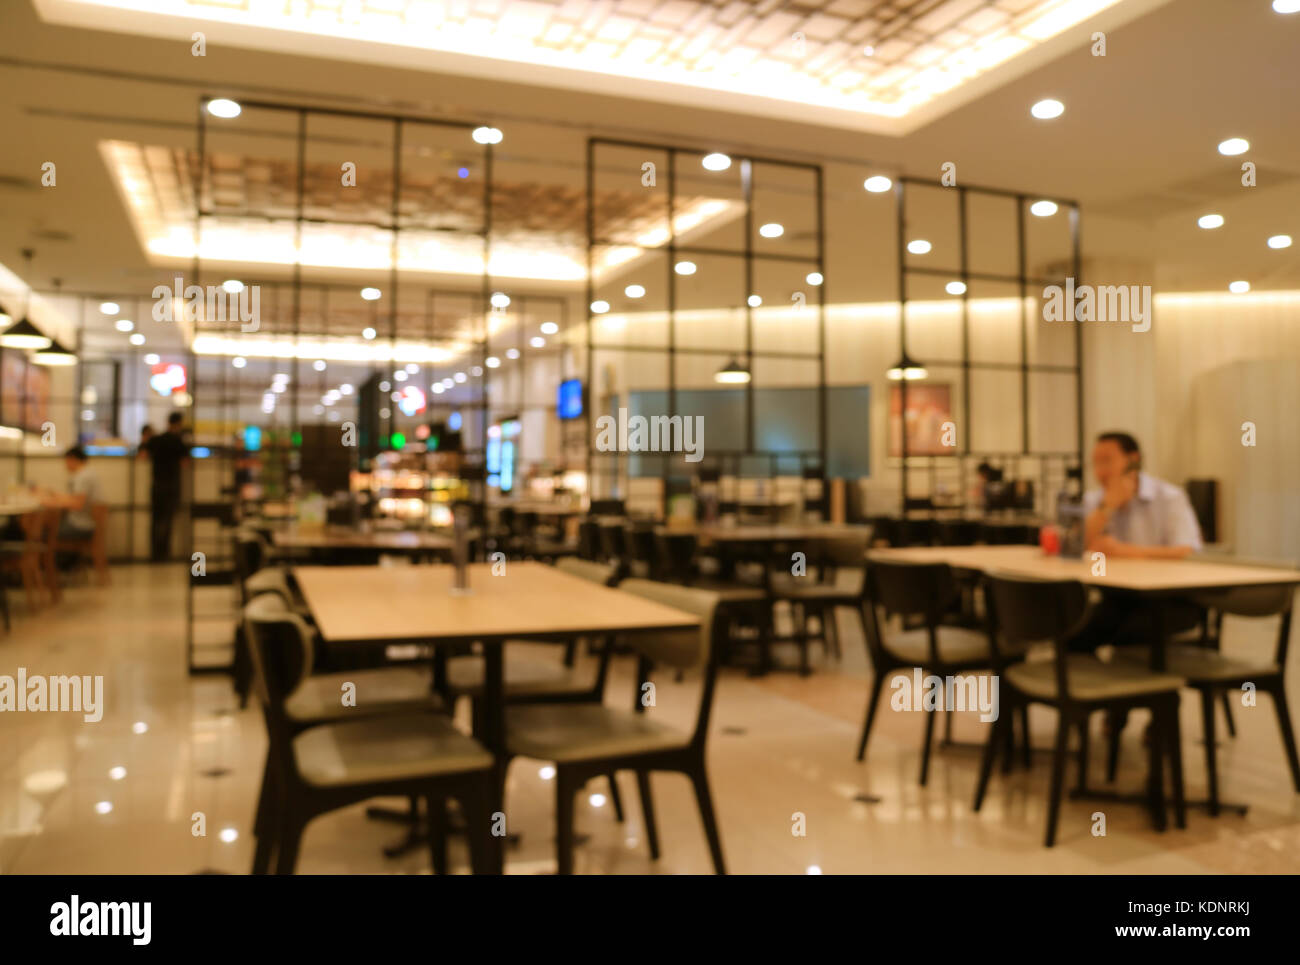 Blurred Modern Style Interior Of A Cafe Restaurant In Beige And Black Stock Photo Alamy